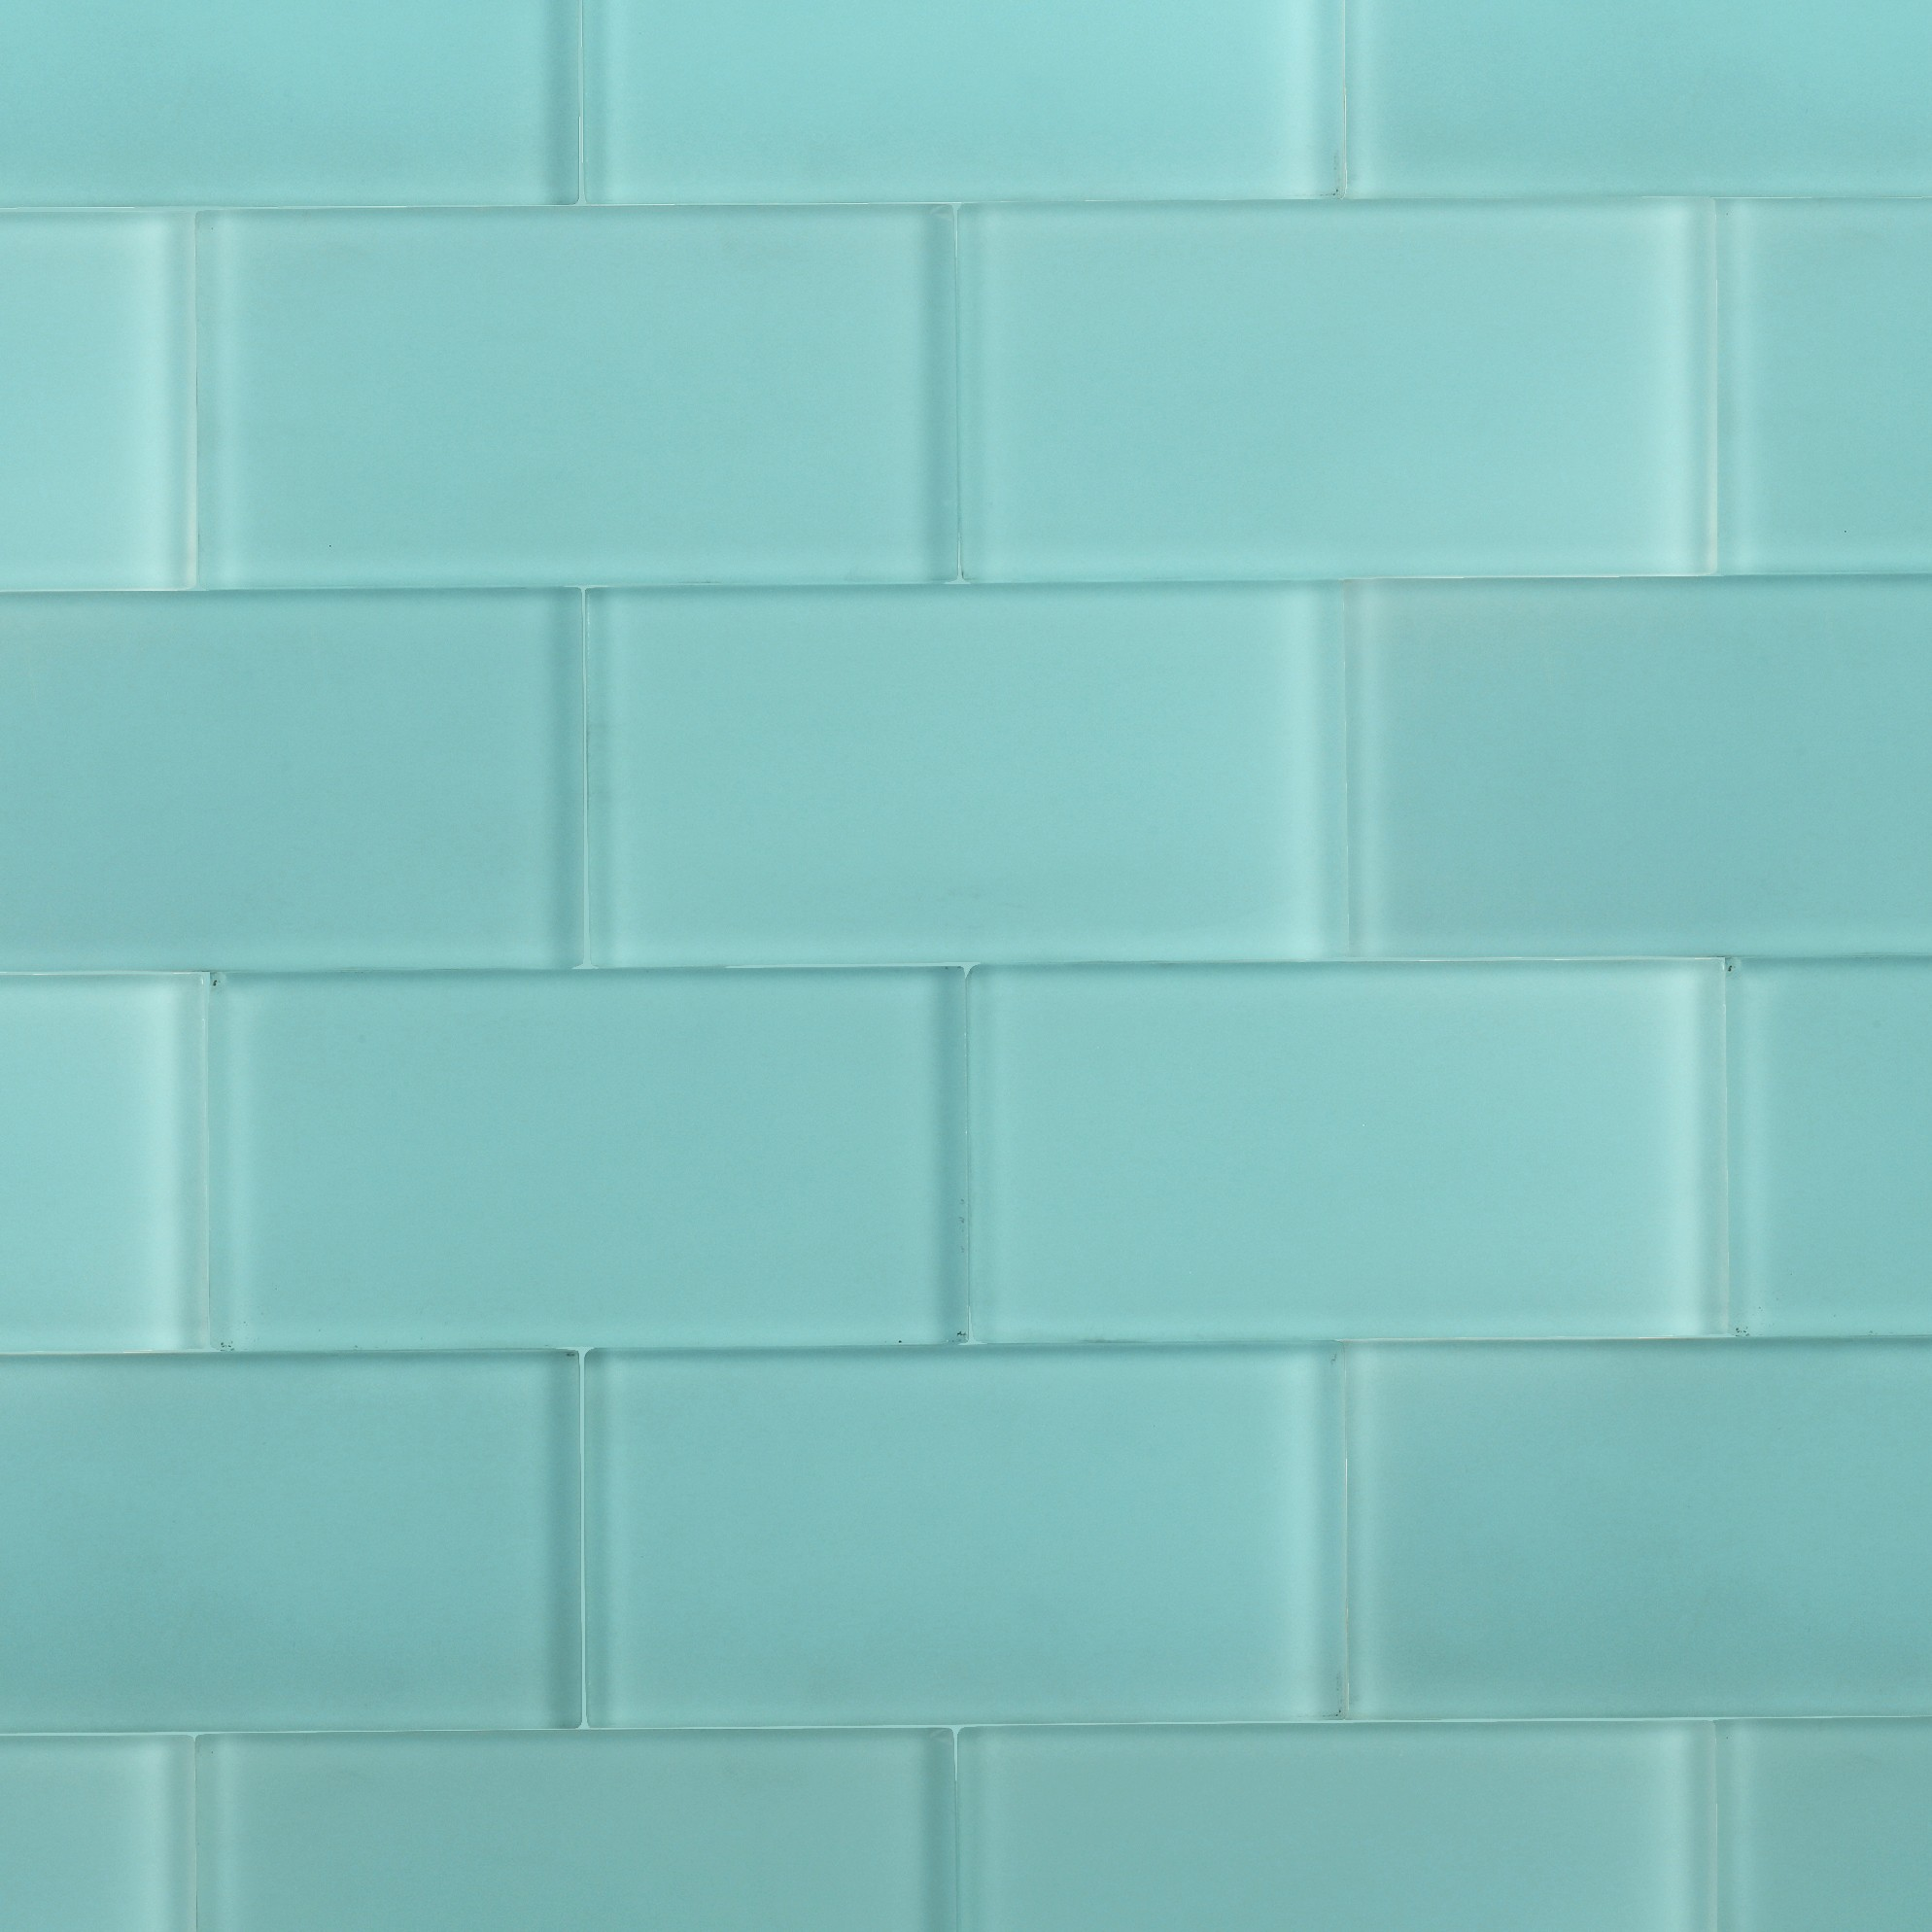 21 Best Images About Frosted Glass Tile Kitchen On: Shop For Loft Turquoise Frosted 3 X 6 Glass Tiles At